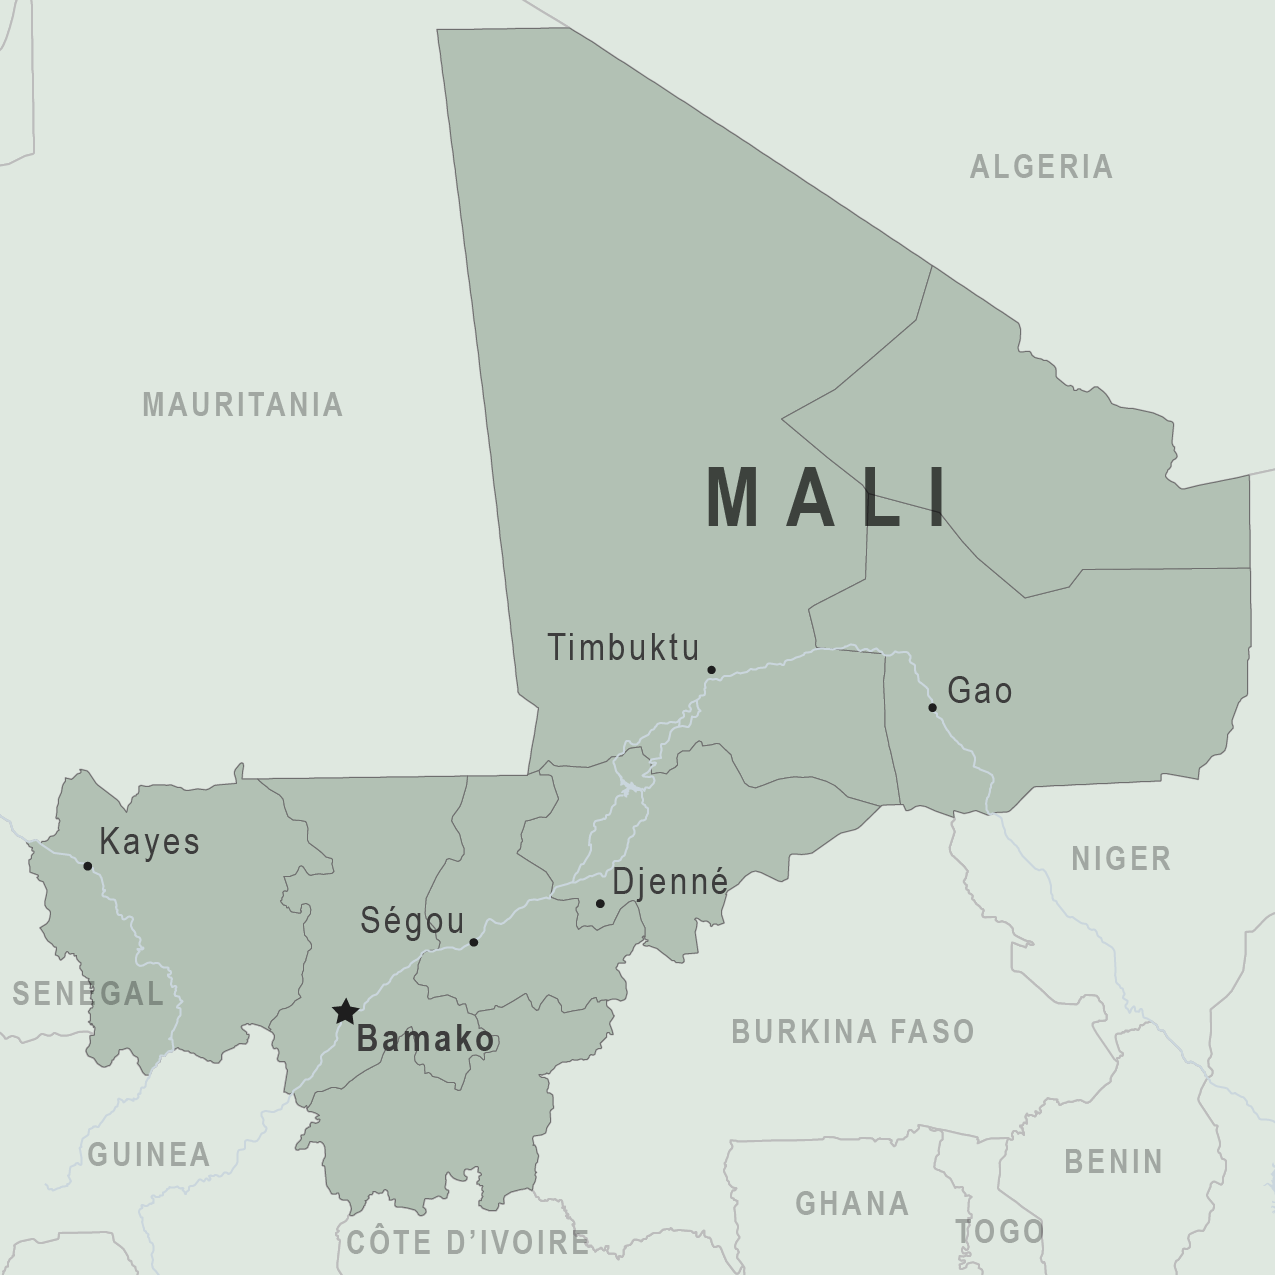 Health Information for Travelers to MALI - Travelers' Health - CDC